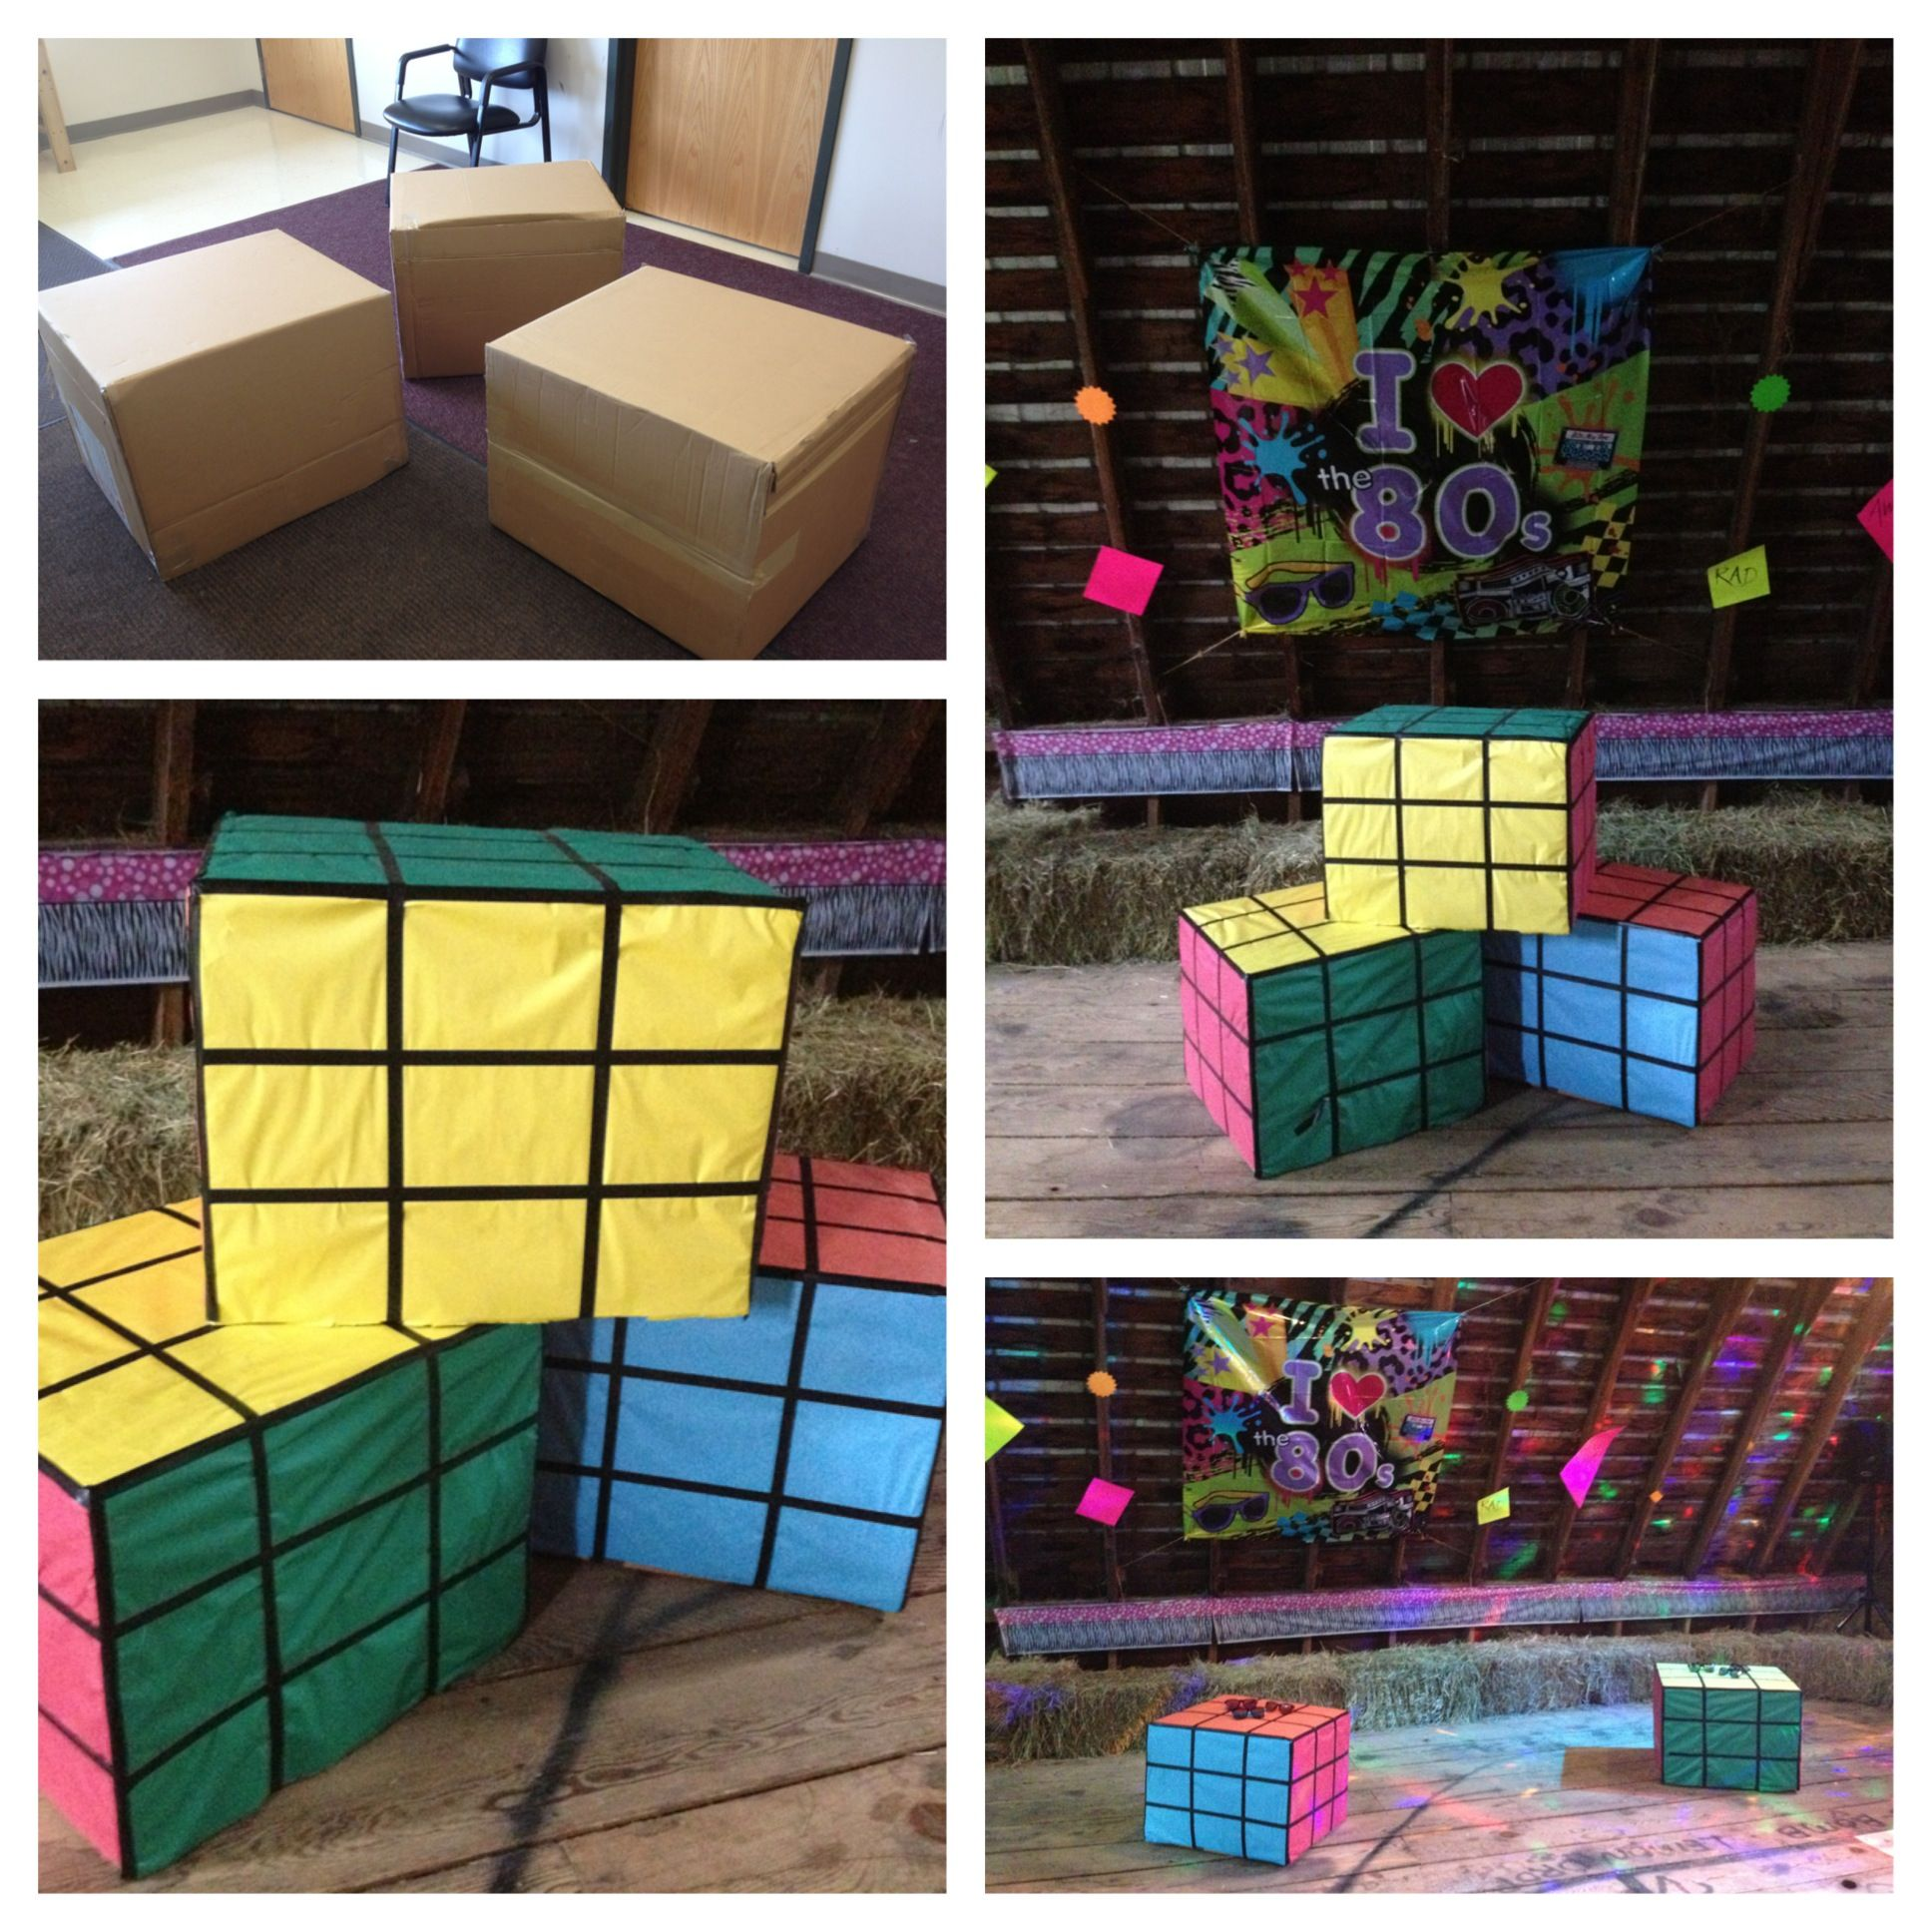 Delightful 80s Theme Party Ideas Decorations Part - 10: Birthday Party Ideas · I Made These Rubics Cube Cocktail Tables From  Cardboard Boxes. They Were Used To Decorate · 80s Theme ...